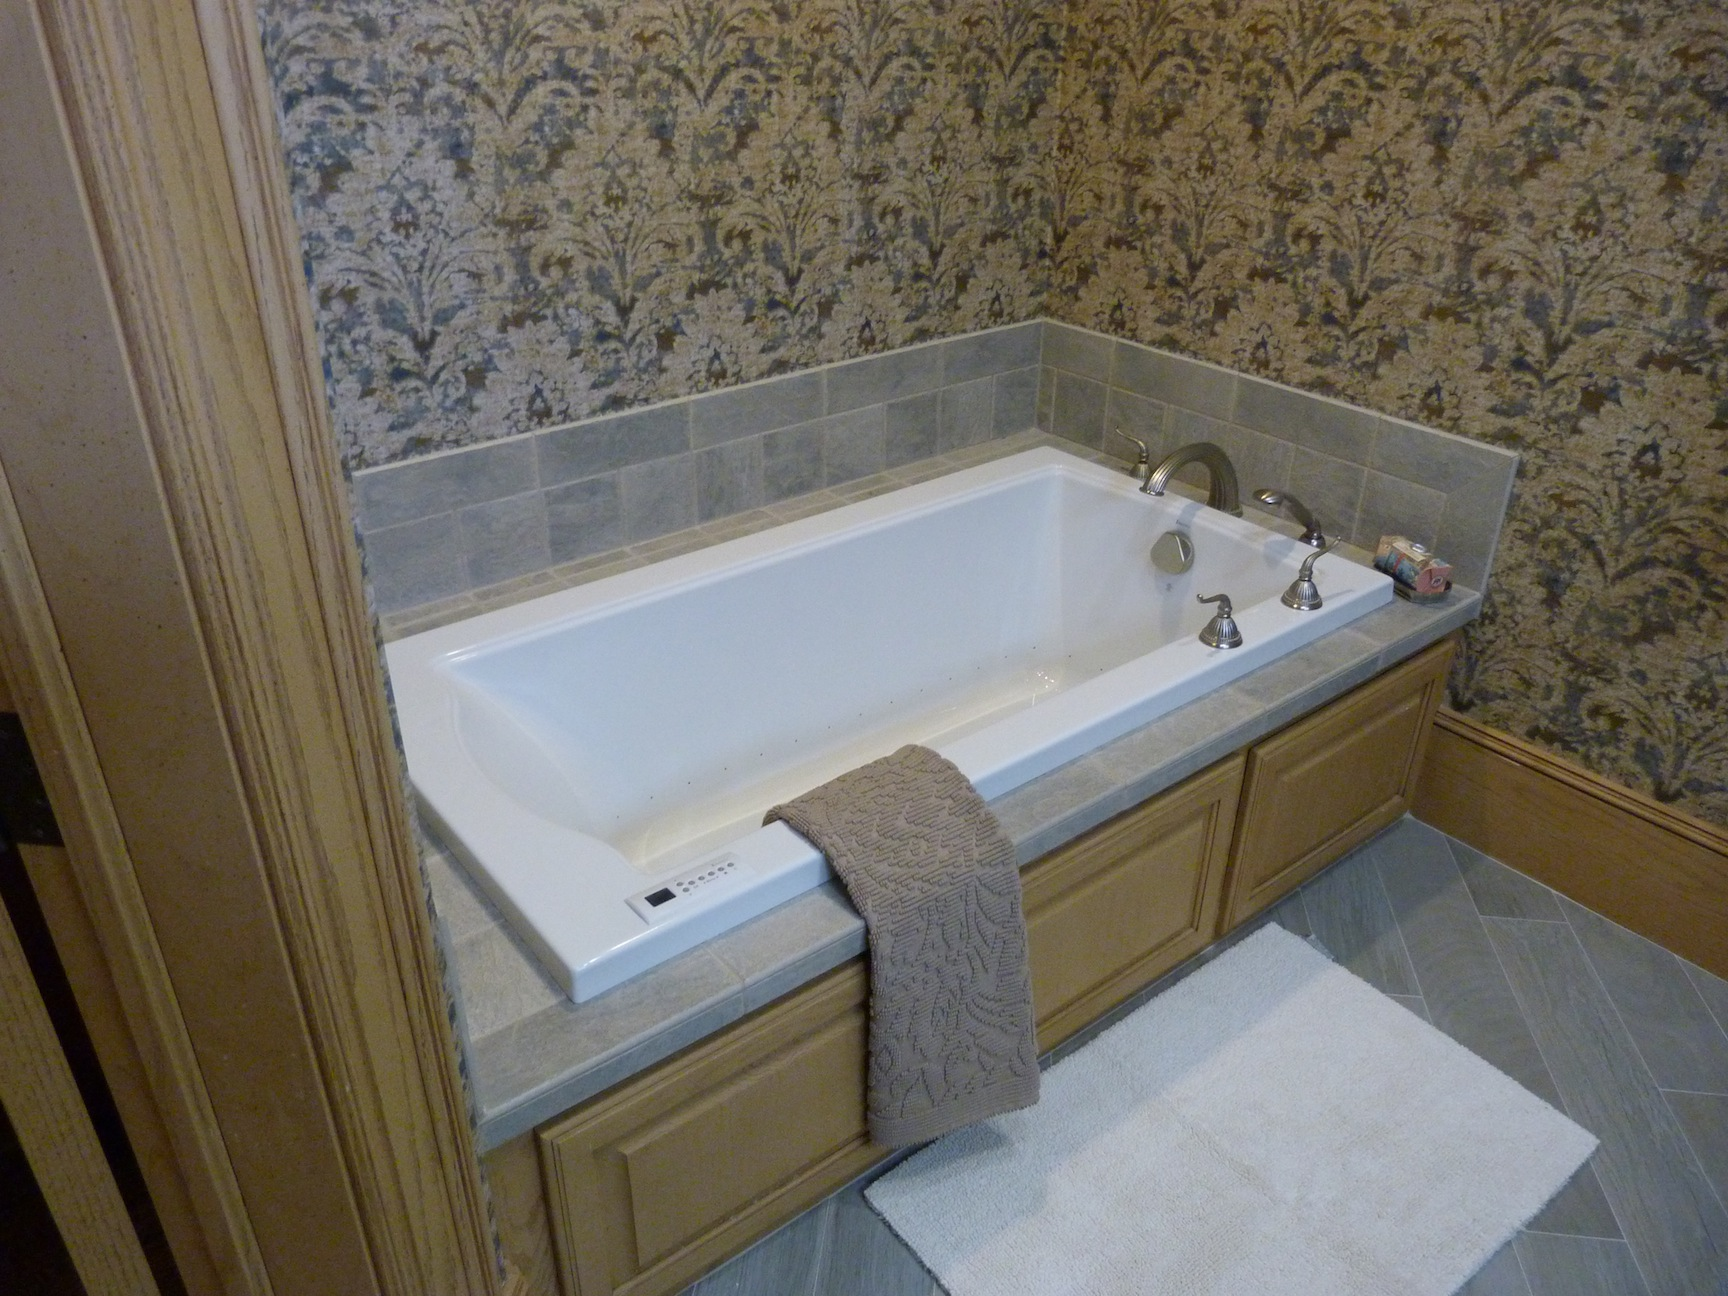 Bathroom Remodel Cost Oklahoma bathroom remodeling oklahoma city : majestic construction